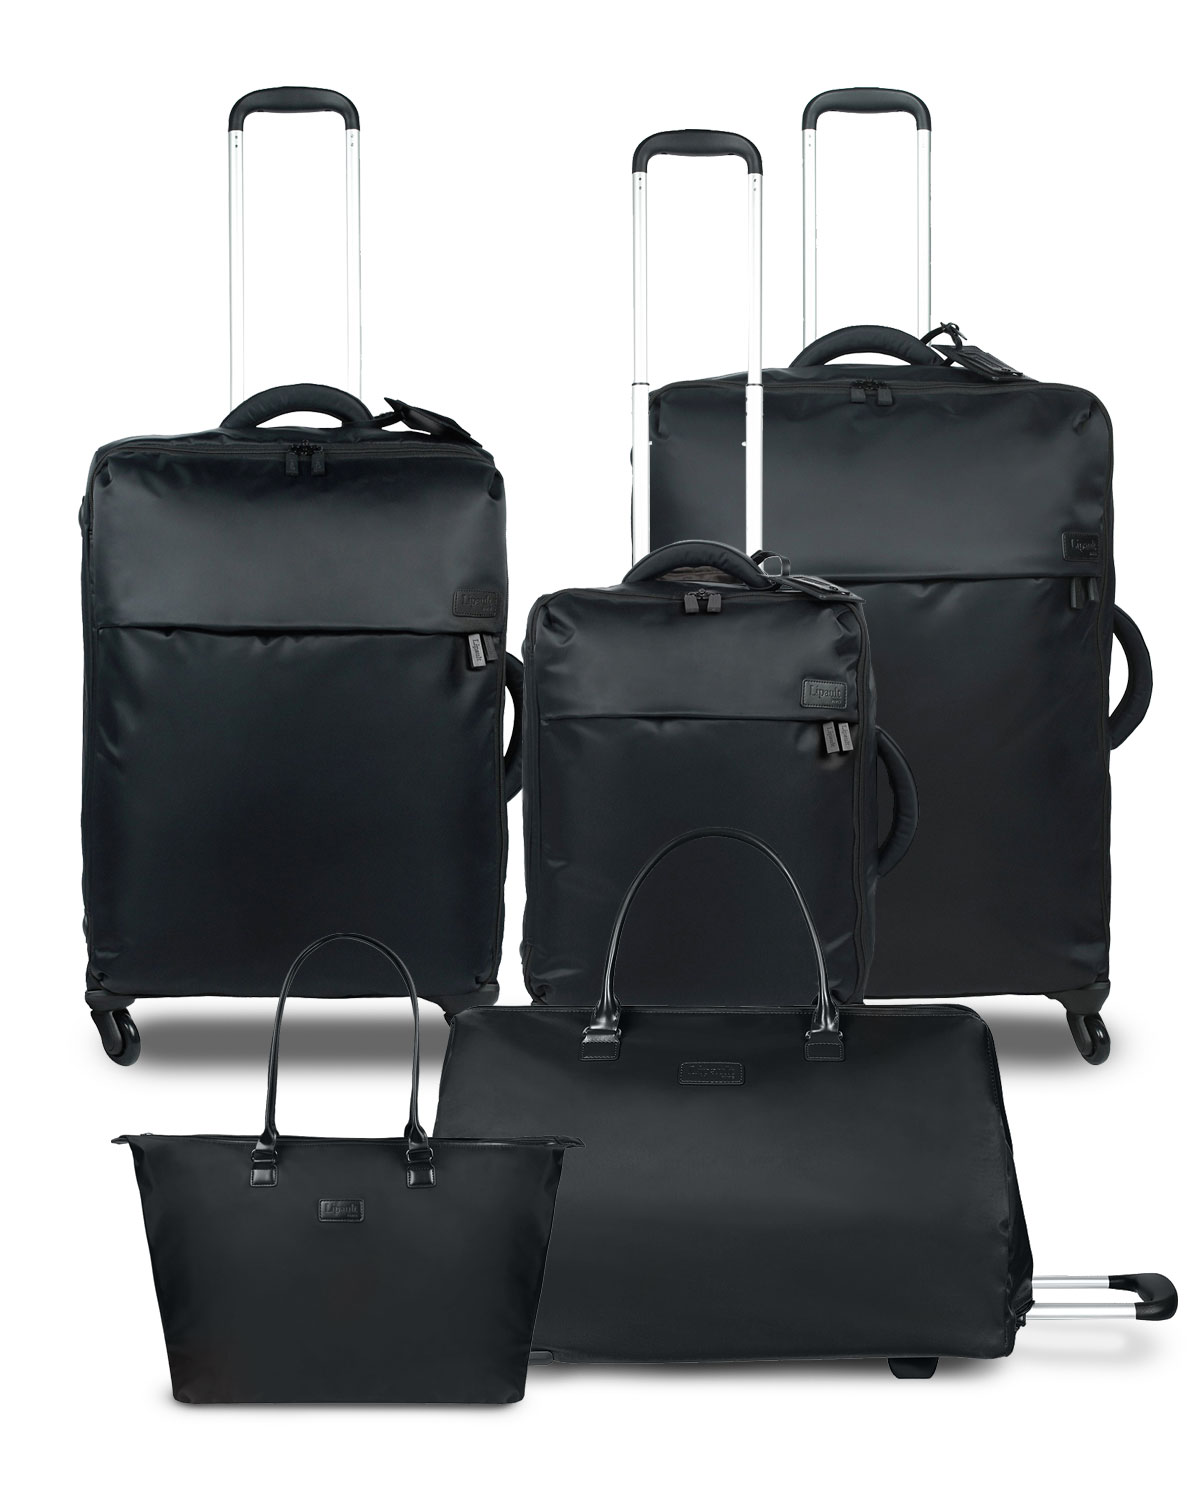 Wheeled Weekend Bag Luggage